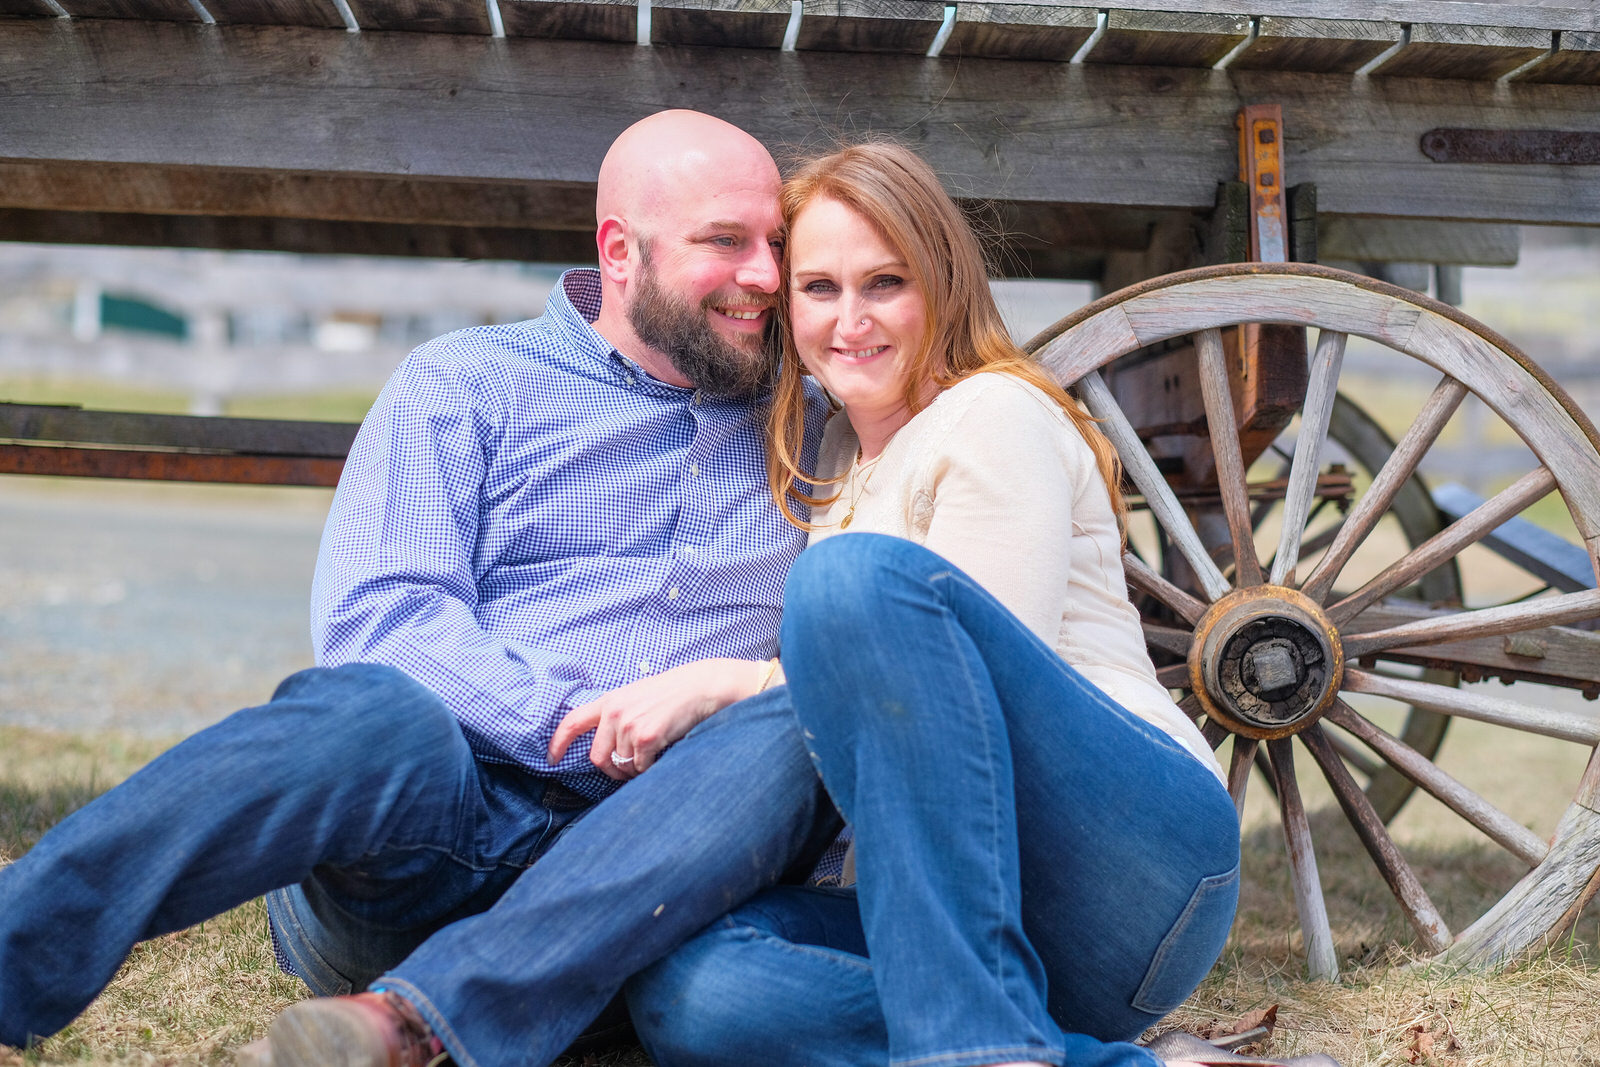 valley-view-farm-engagement-photography-173.jpg